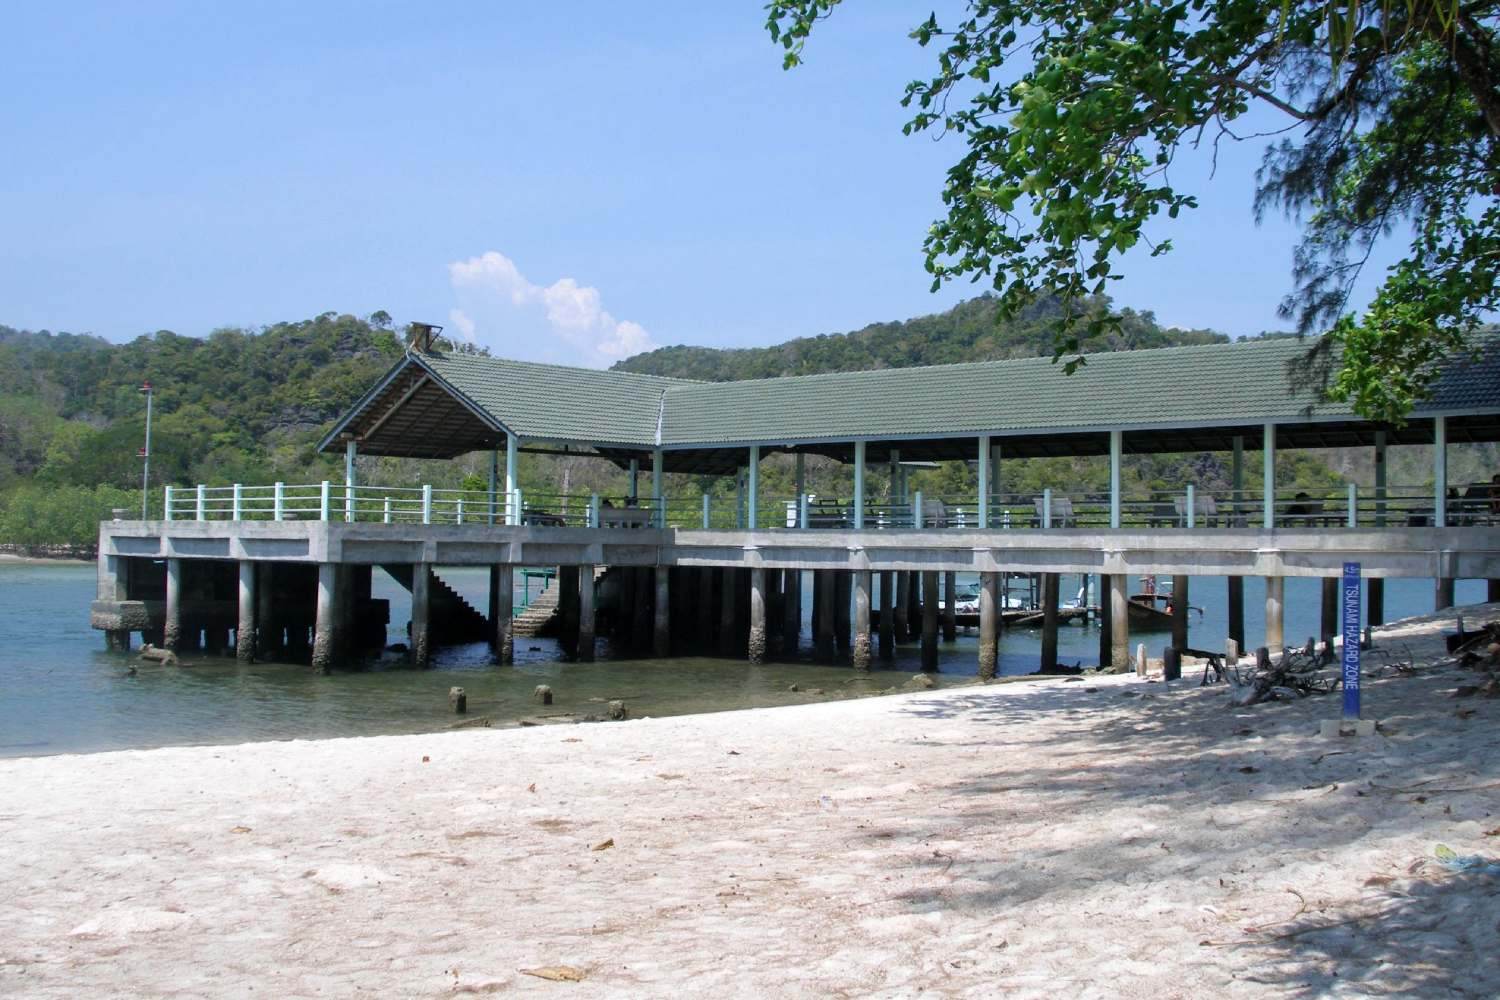 The pier of Koh Tarutao to which one arrives from the mainland or Koh Lipe